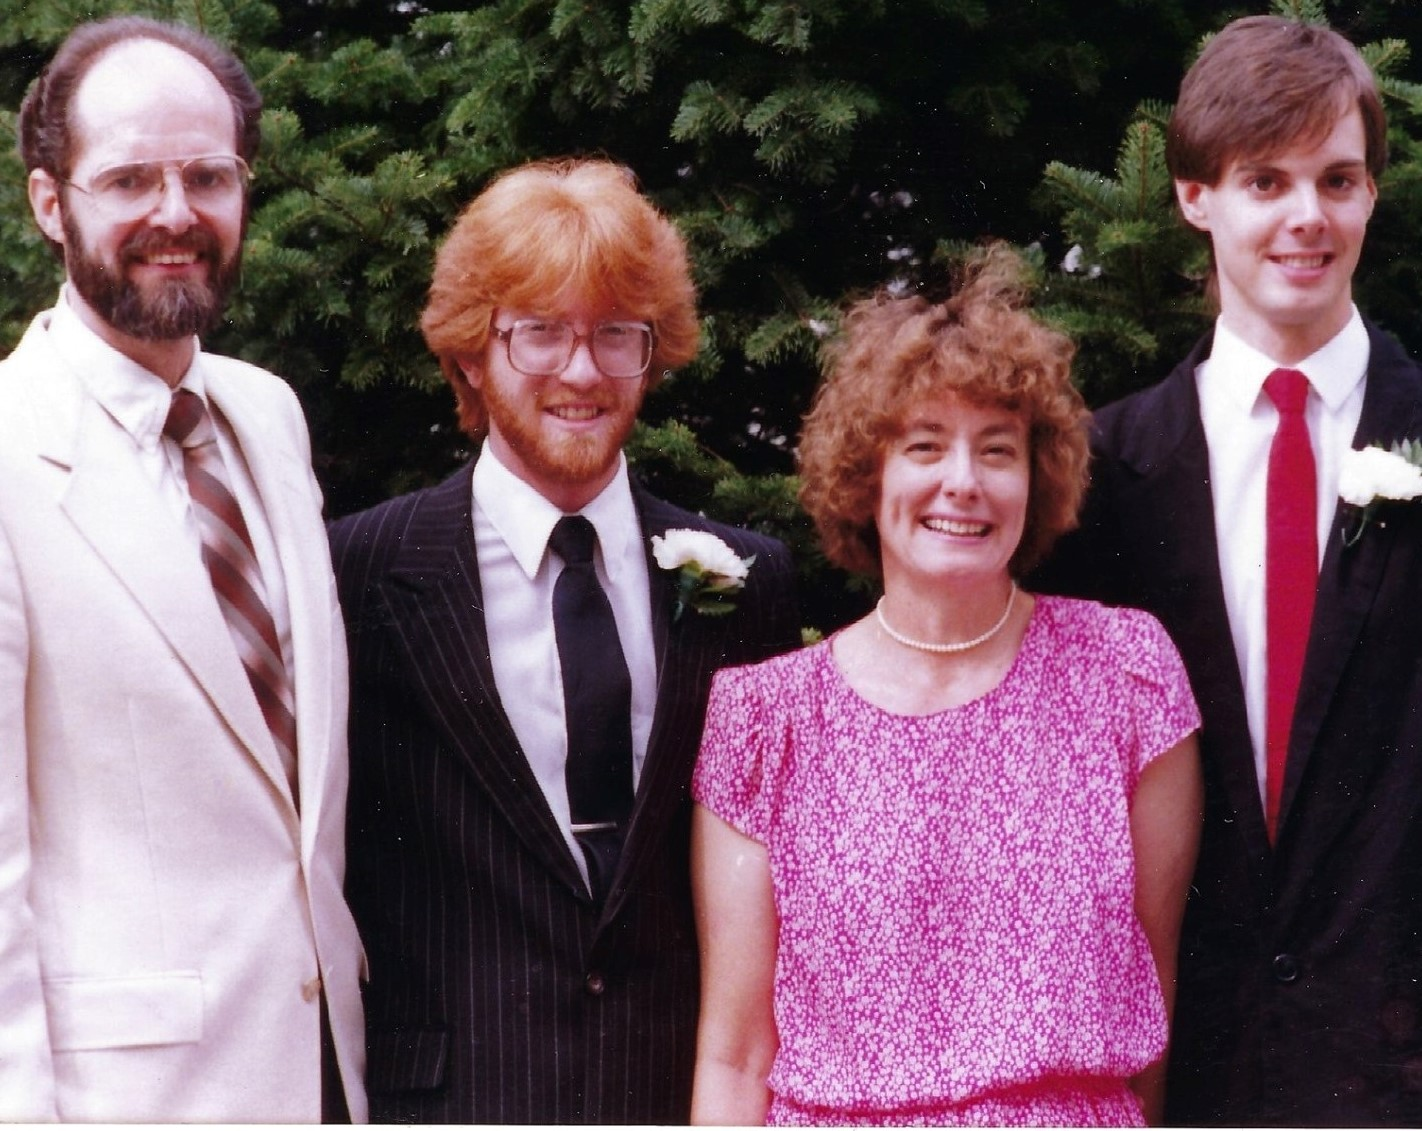 Evan Golder and family in 1988